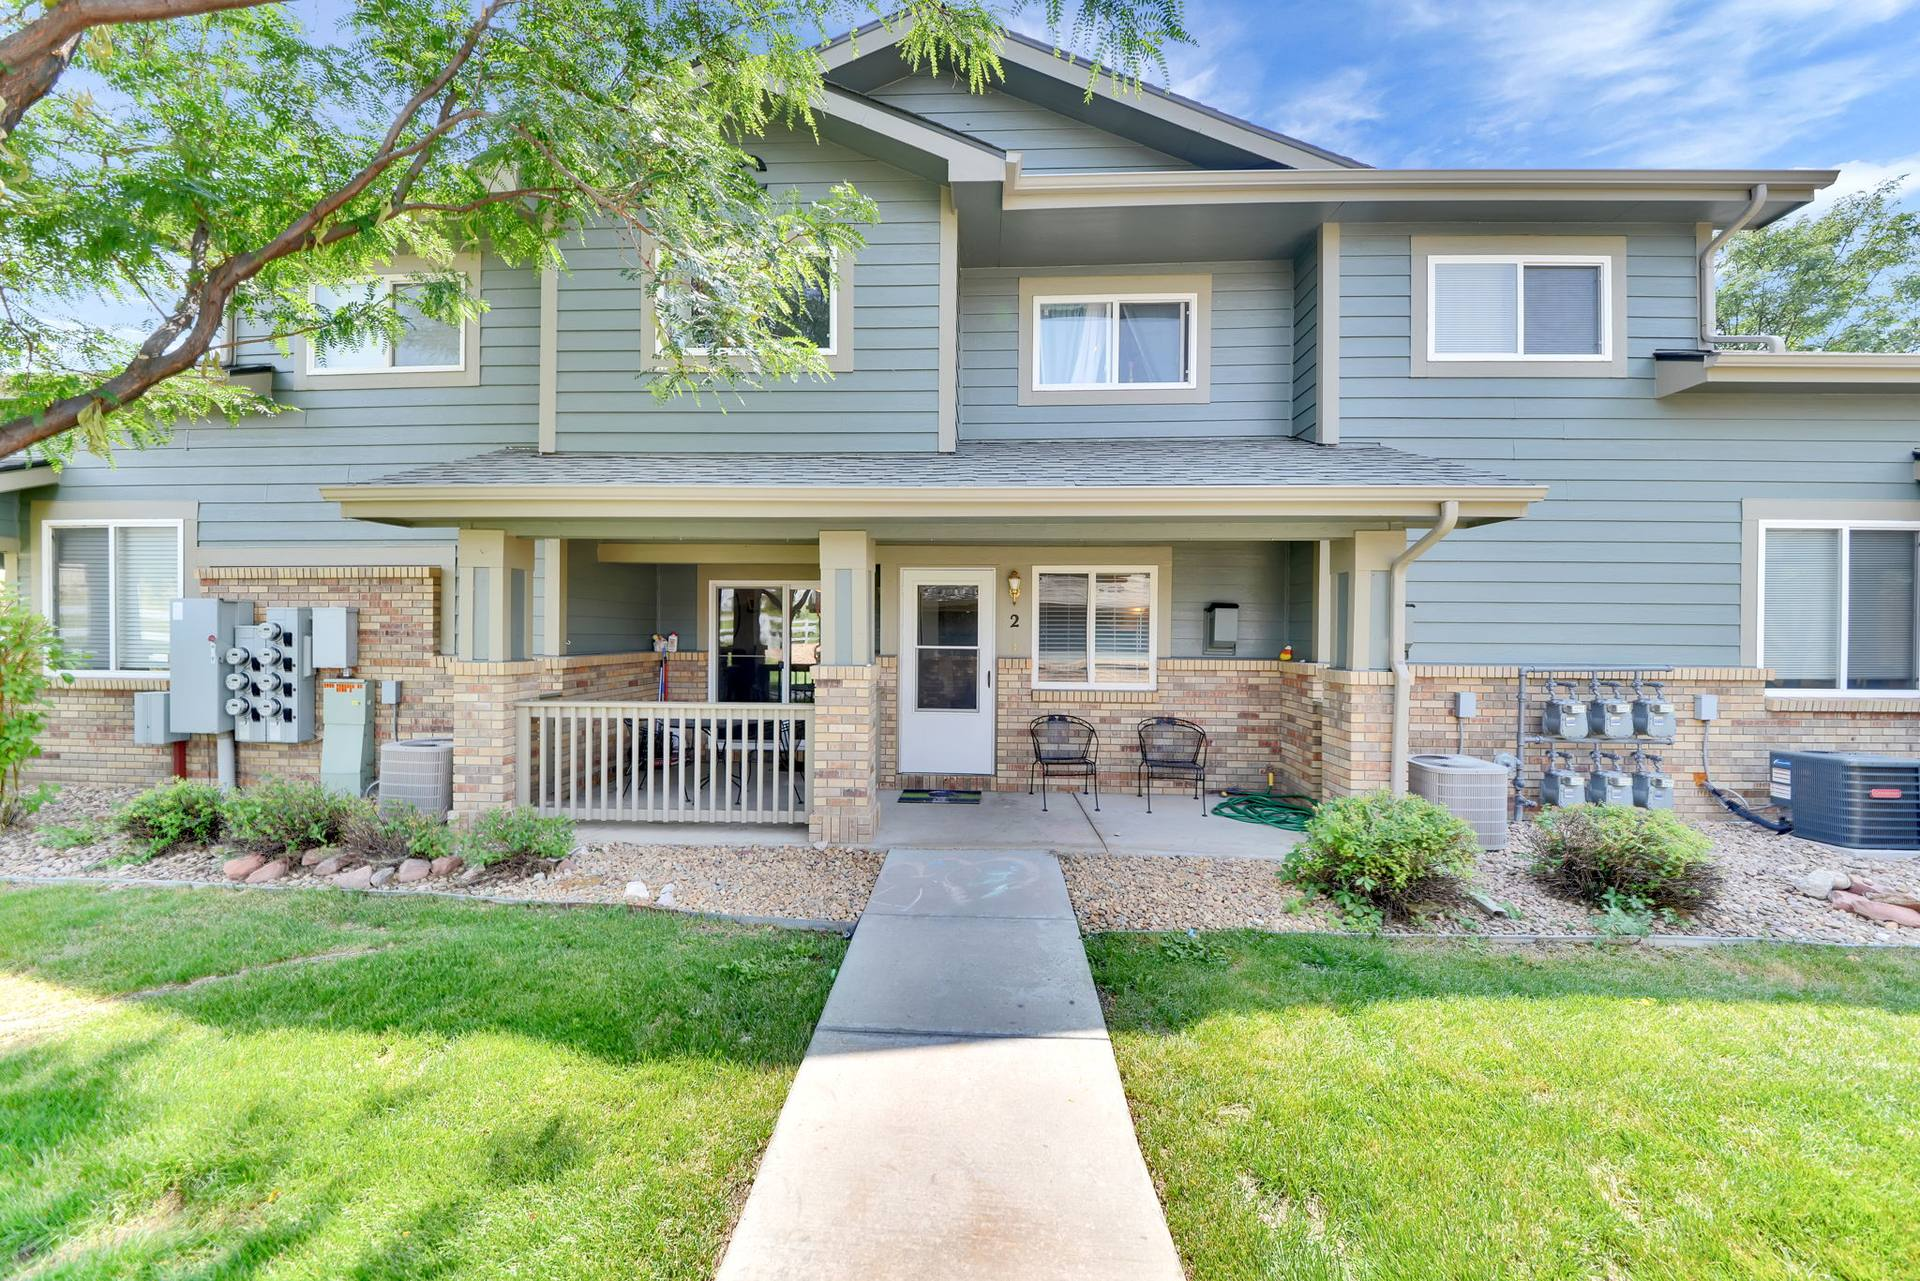 2900 Purcell St, Brighton, CO 80601, USA